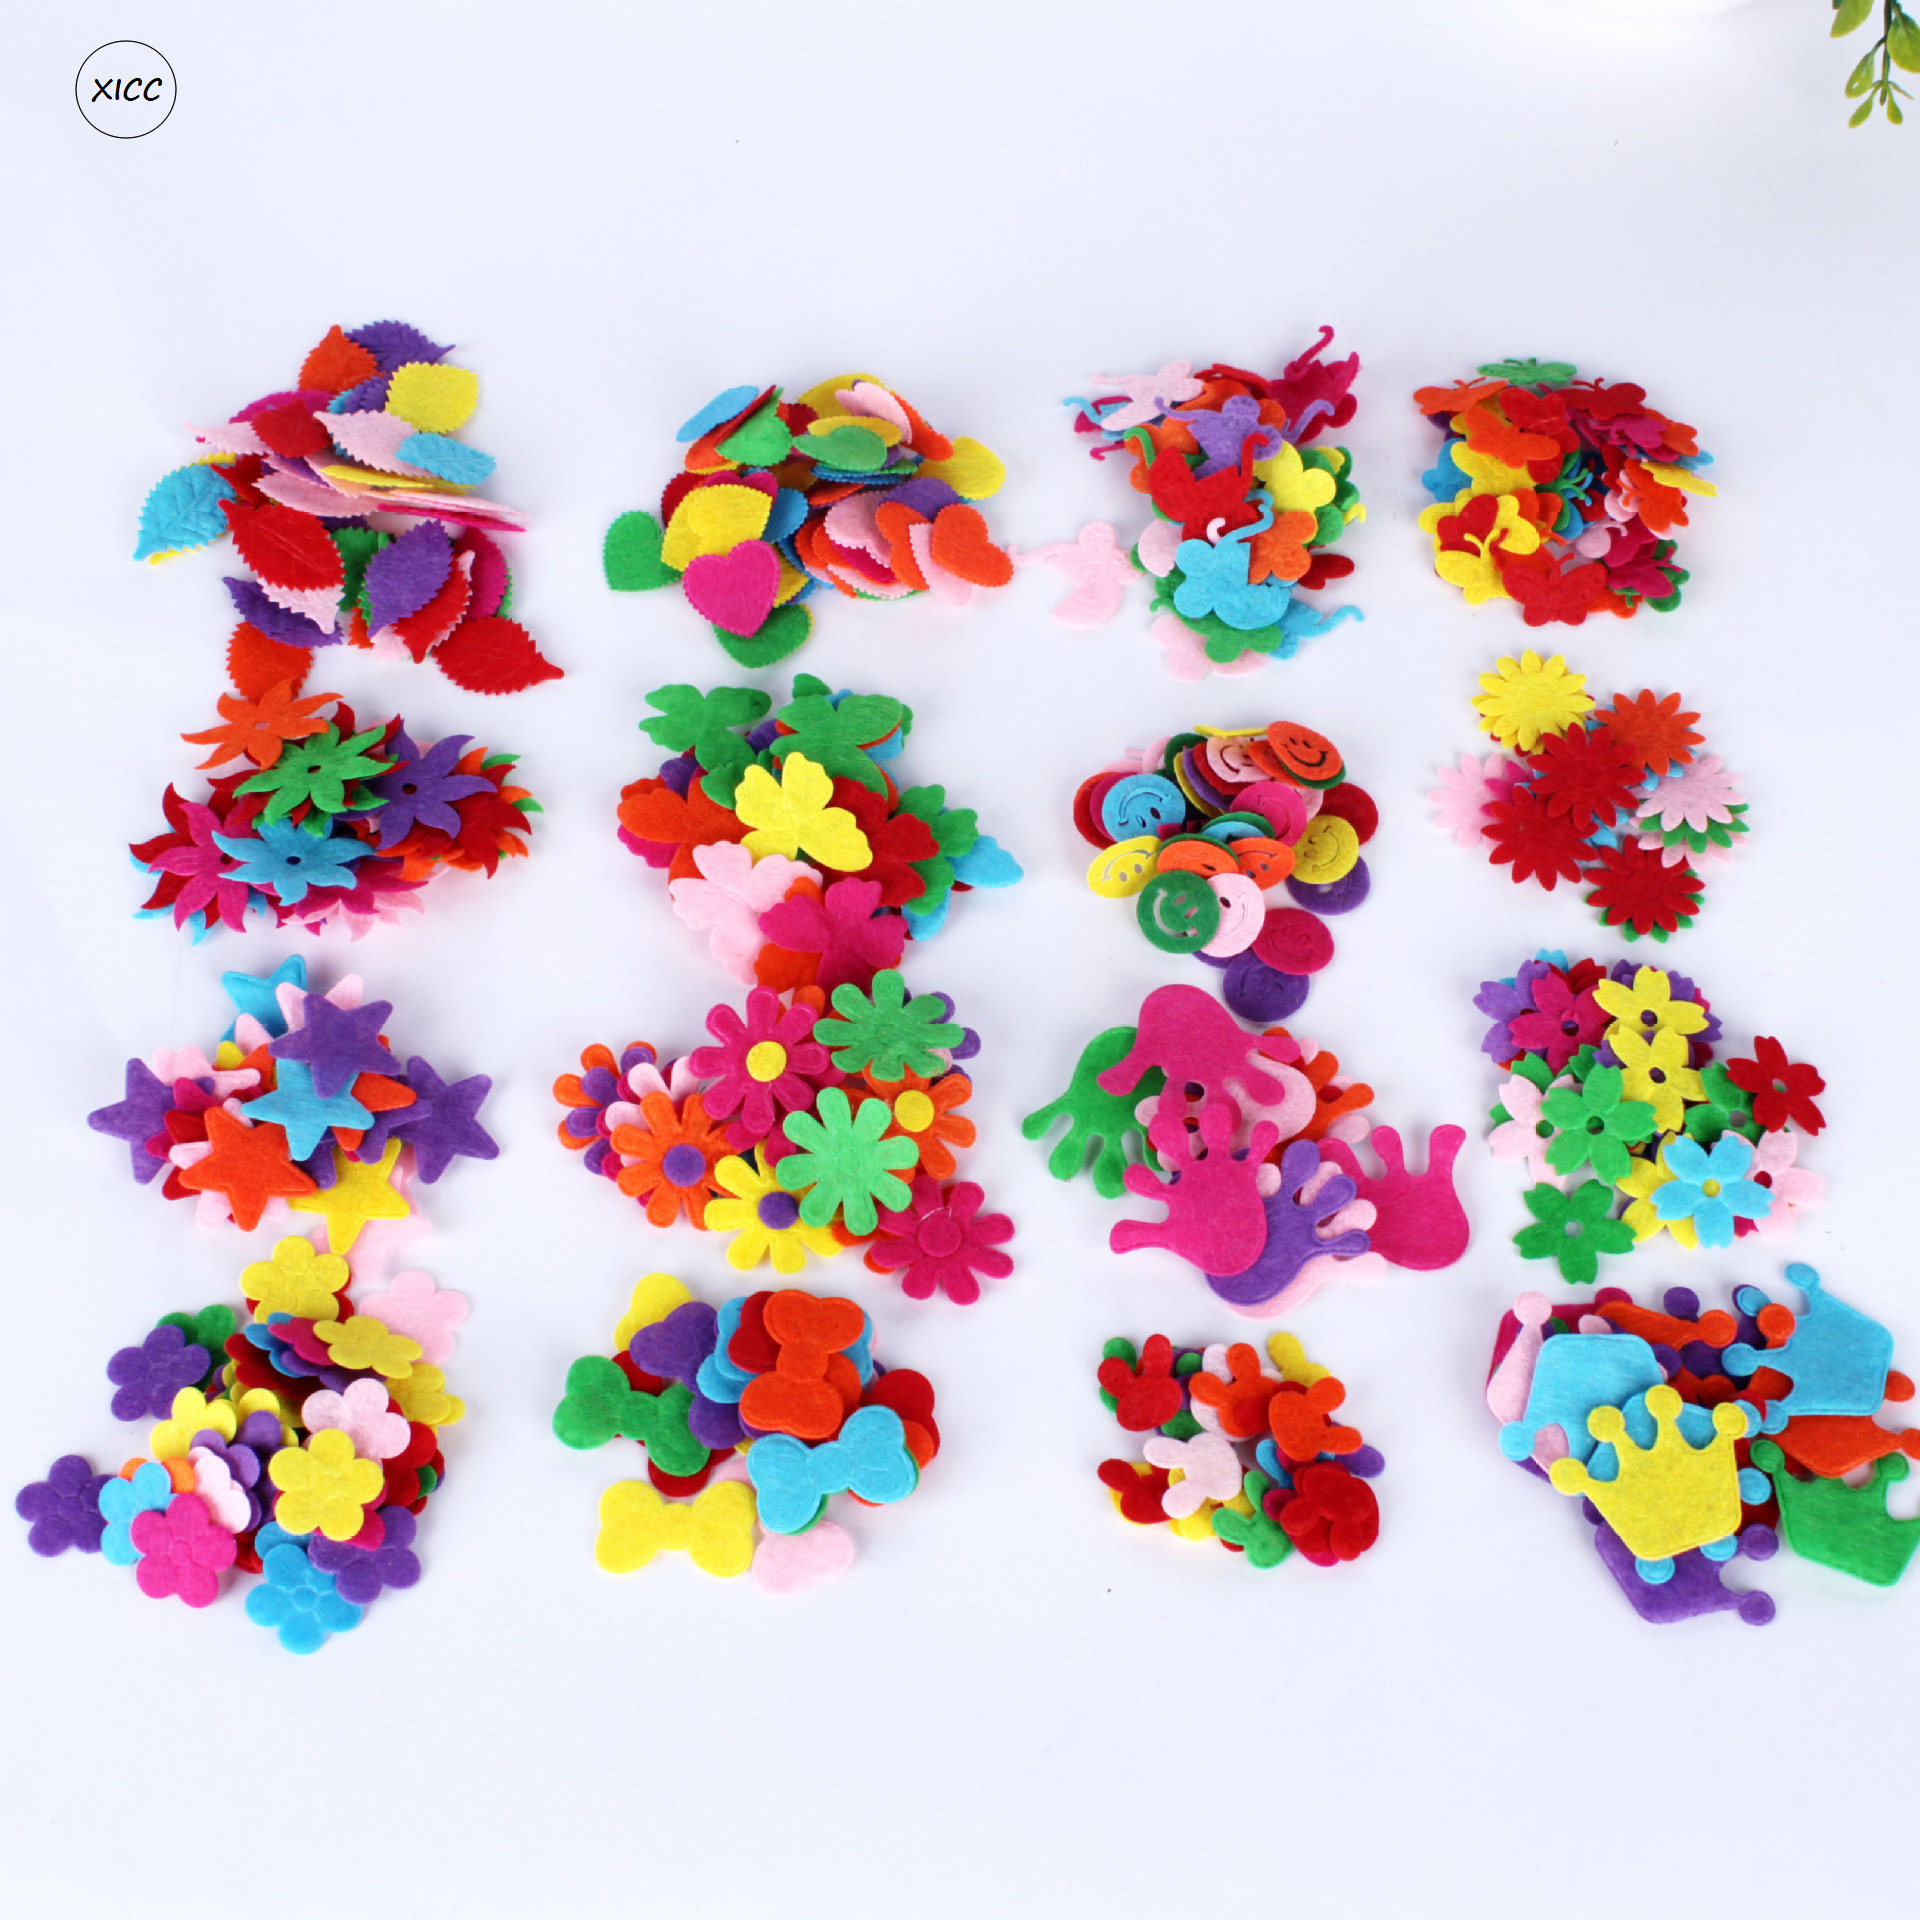 XICC 100PCS Colorful Nonwoven Round Flower Wool Felt Fabric Hair Rope DIY Handmade Accessory Sticker Applique Patches Felt Pad